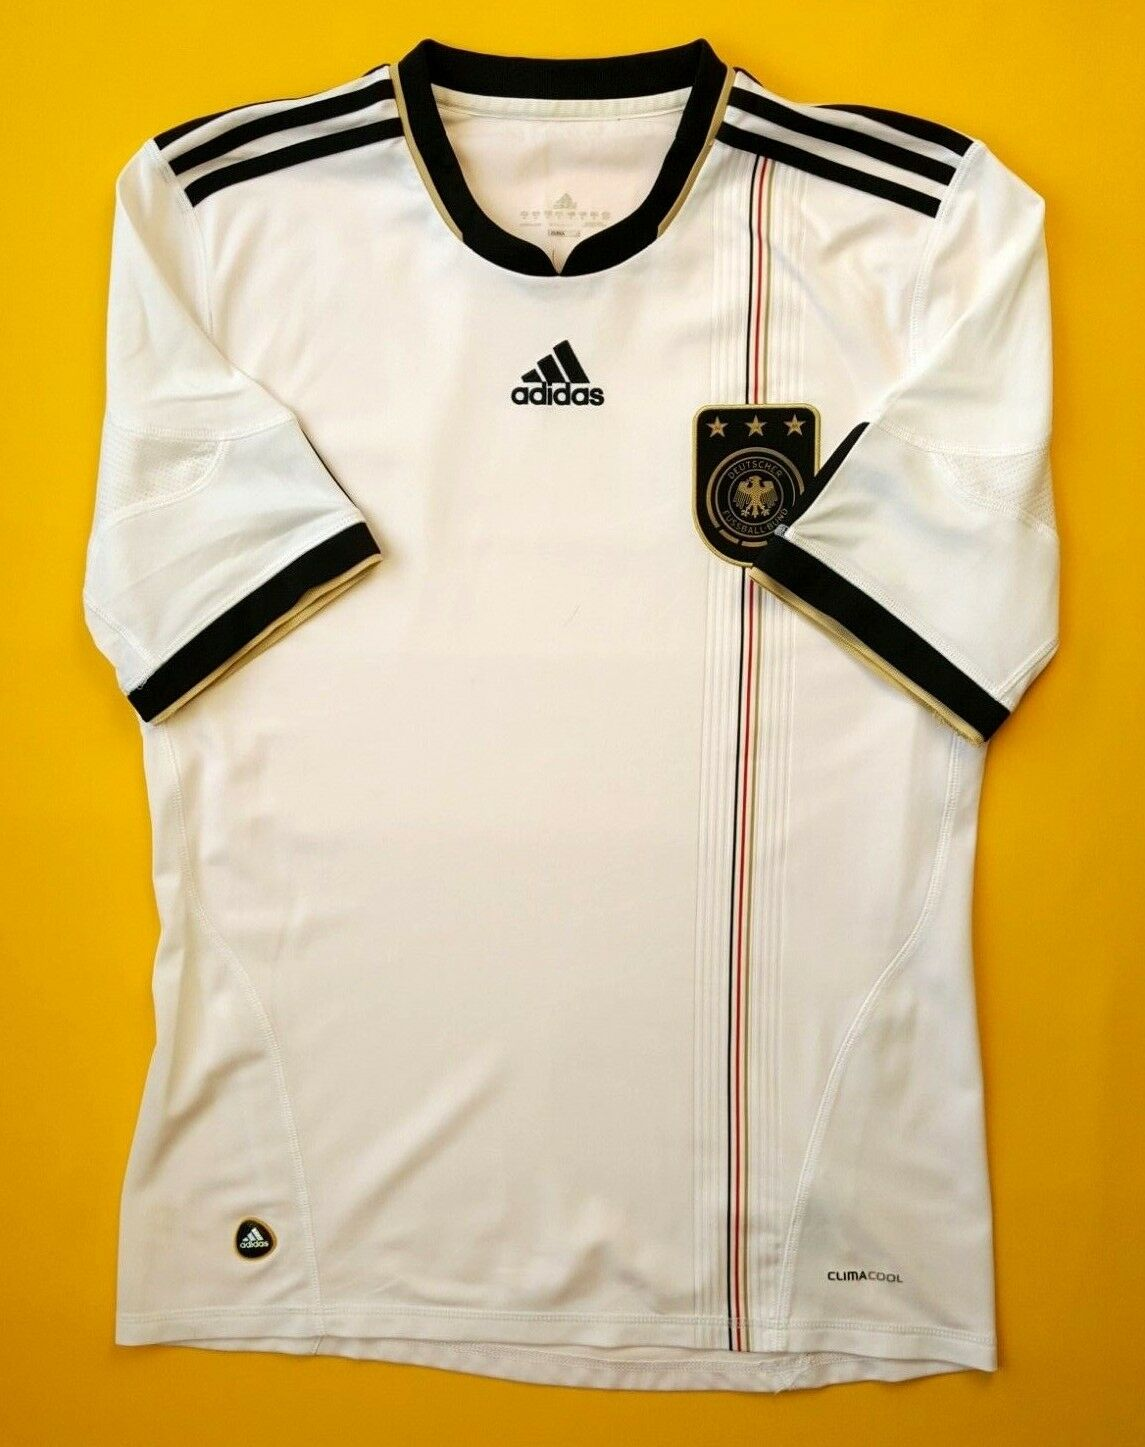 5 5 Germany soccer jersey MEDIUM MEDIUM MEDIUM 2010 2012 home shirt P41477 Adidas ig93 8553d4